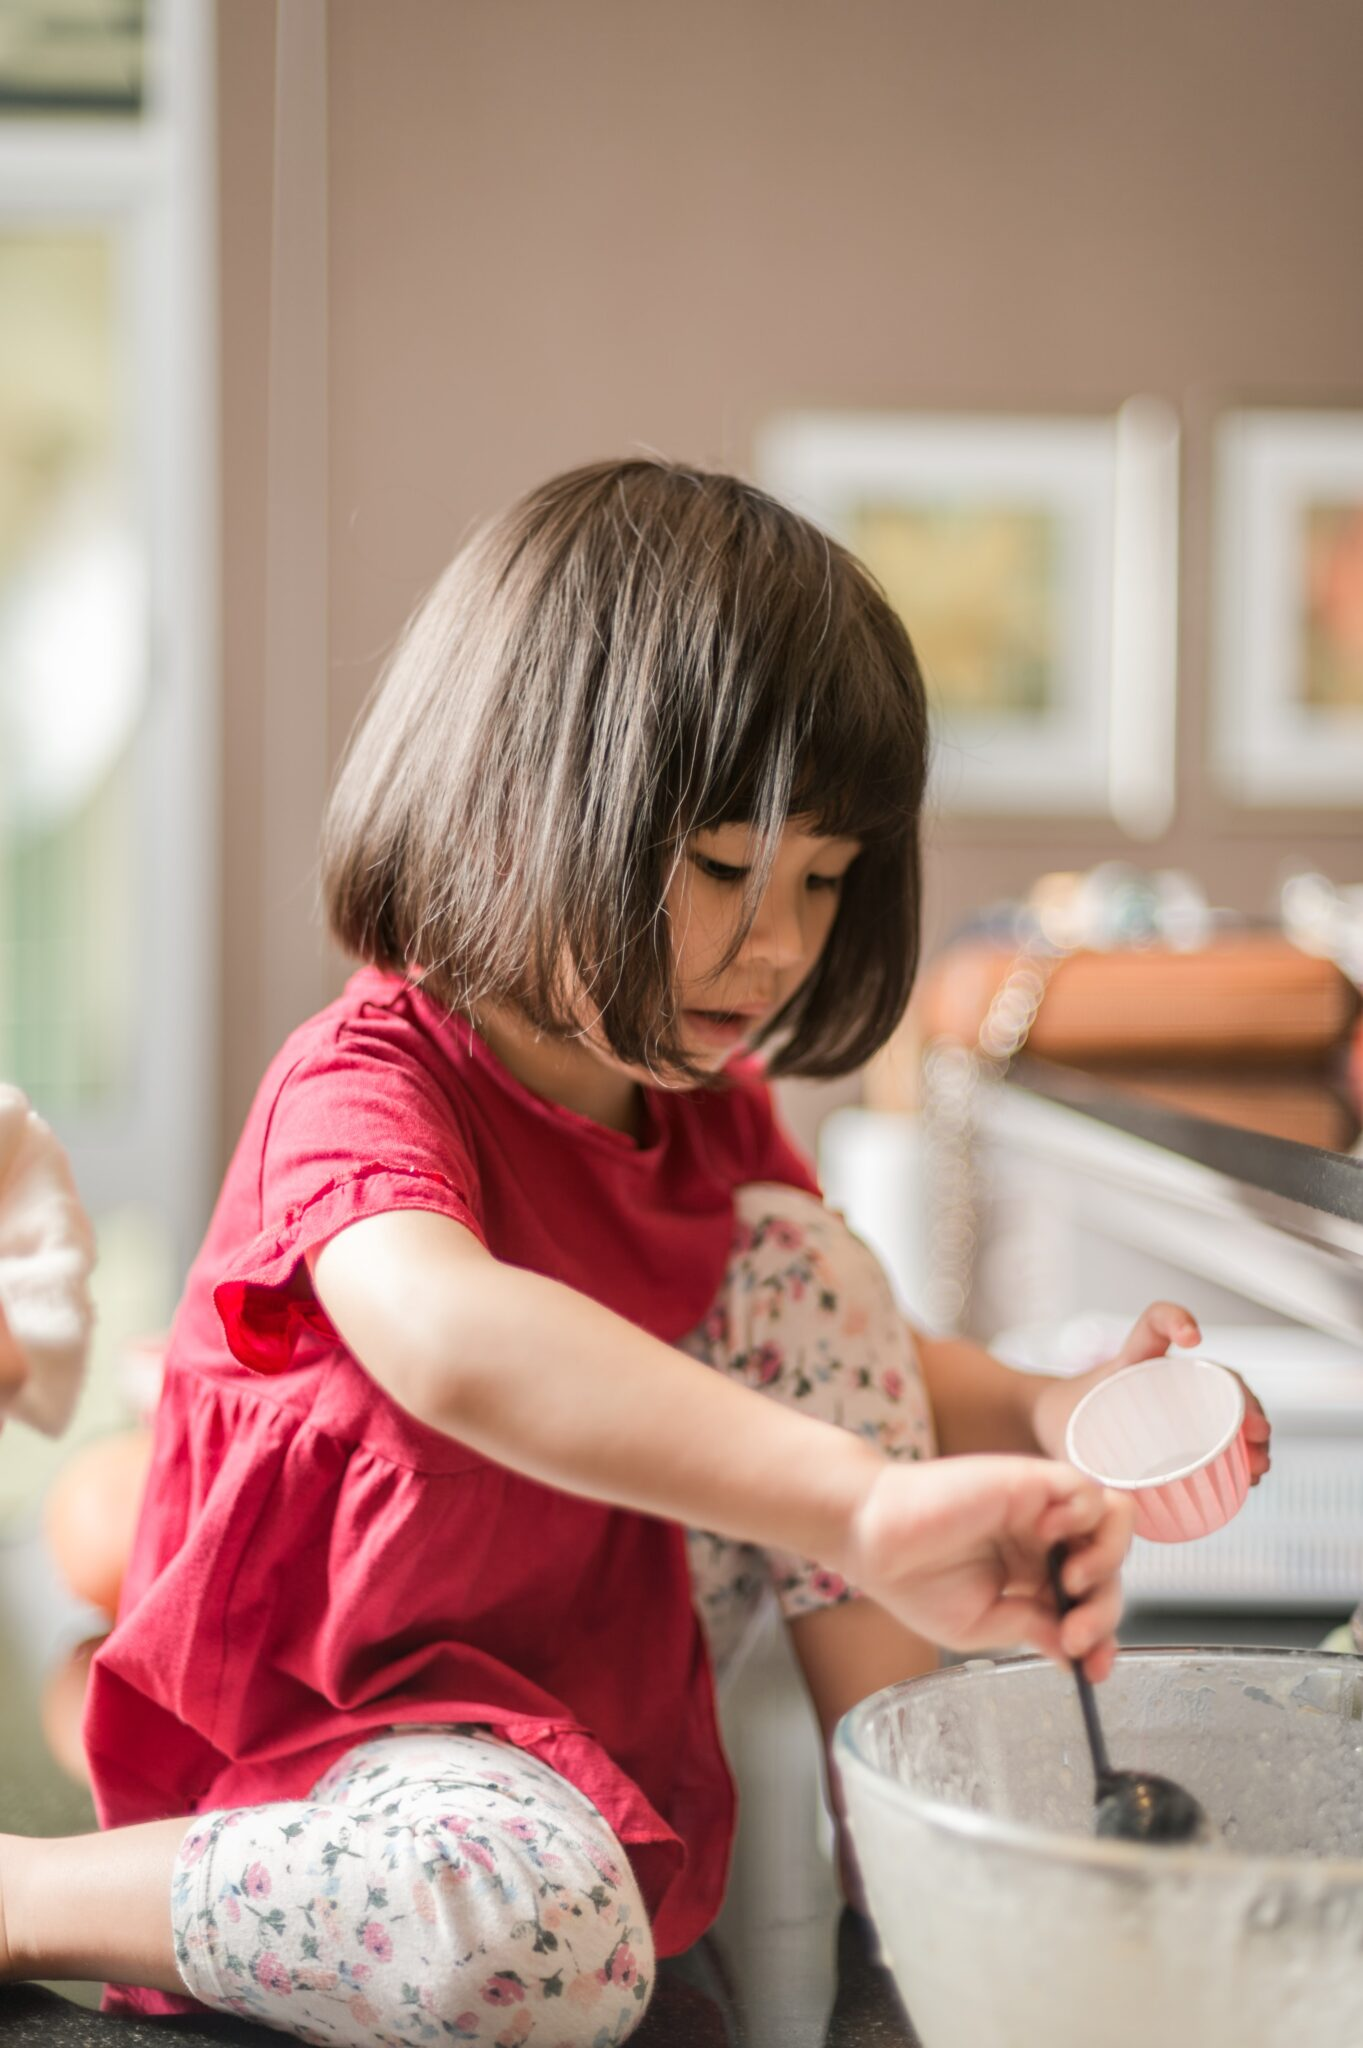 Girl in red t-shirt is helping bake cupcakes at home.